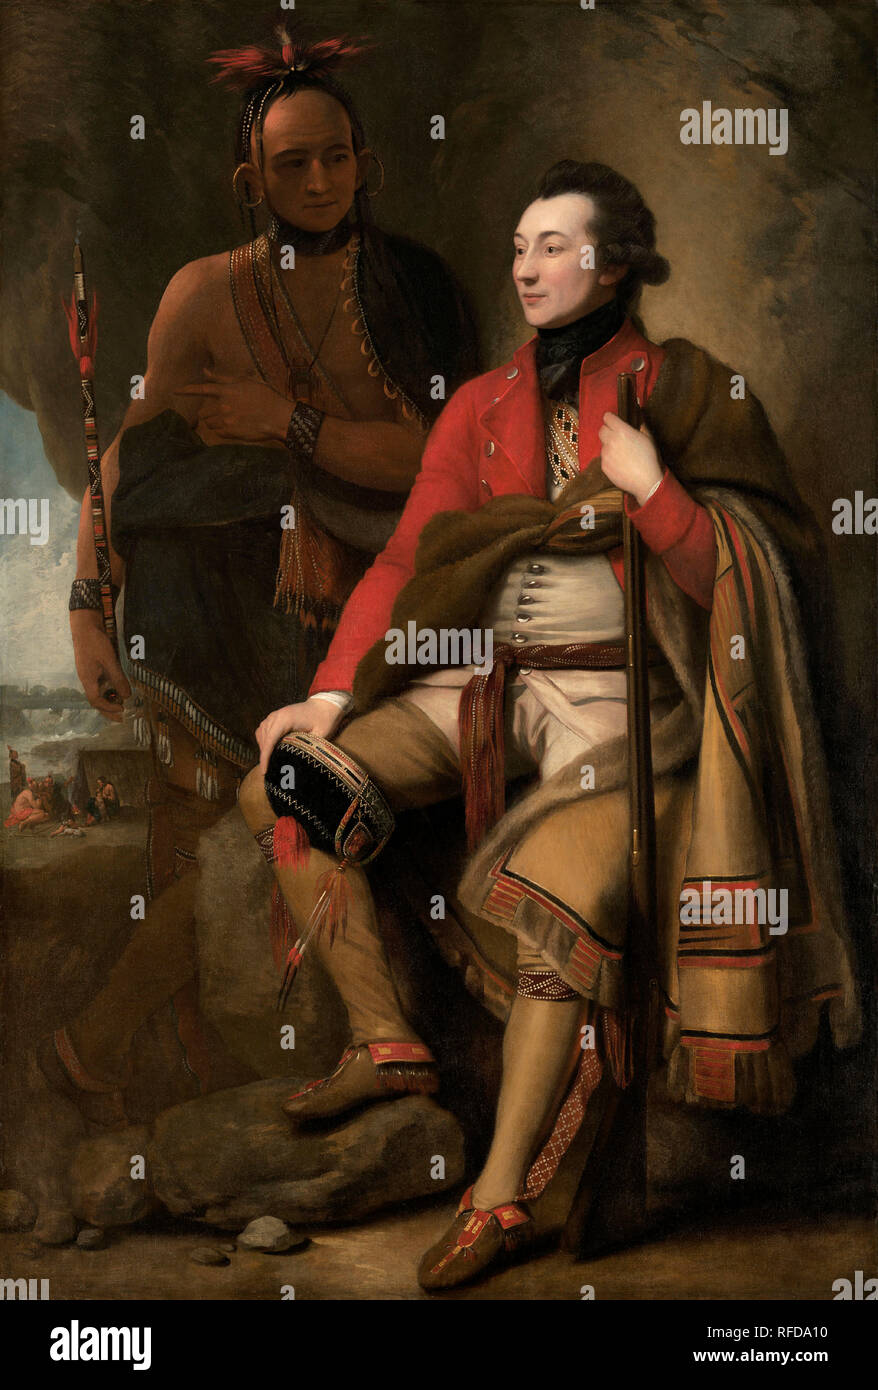 Colonel Guy Johnson and Karonghyontye (Captain David Hill). Dated: 1776. Dimensions: overall: 202 x 138 cm (79 1/2 x 54 5/16 in.)  framed: 222.6 x 160 x 9.5 cm (87 5/8 x 63 x 3 3/4 in.). Medium: oil on canvas. Museum: National Gallery of Art, Washington DC. Author: Benjamin West. WEST, BENJAMIN. - Stock Image